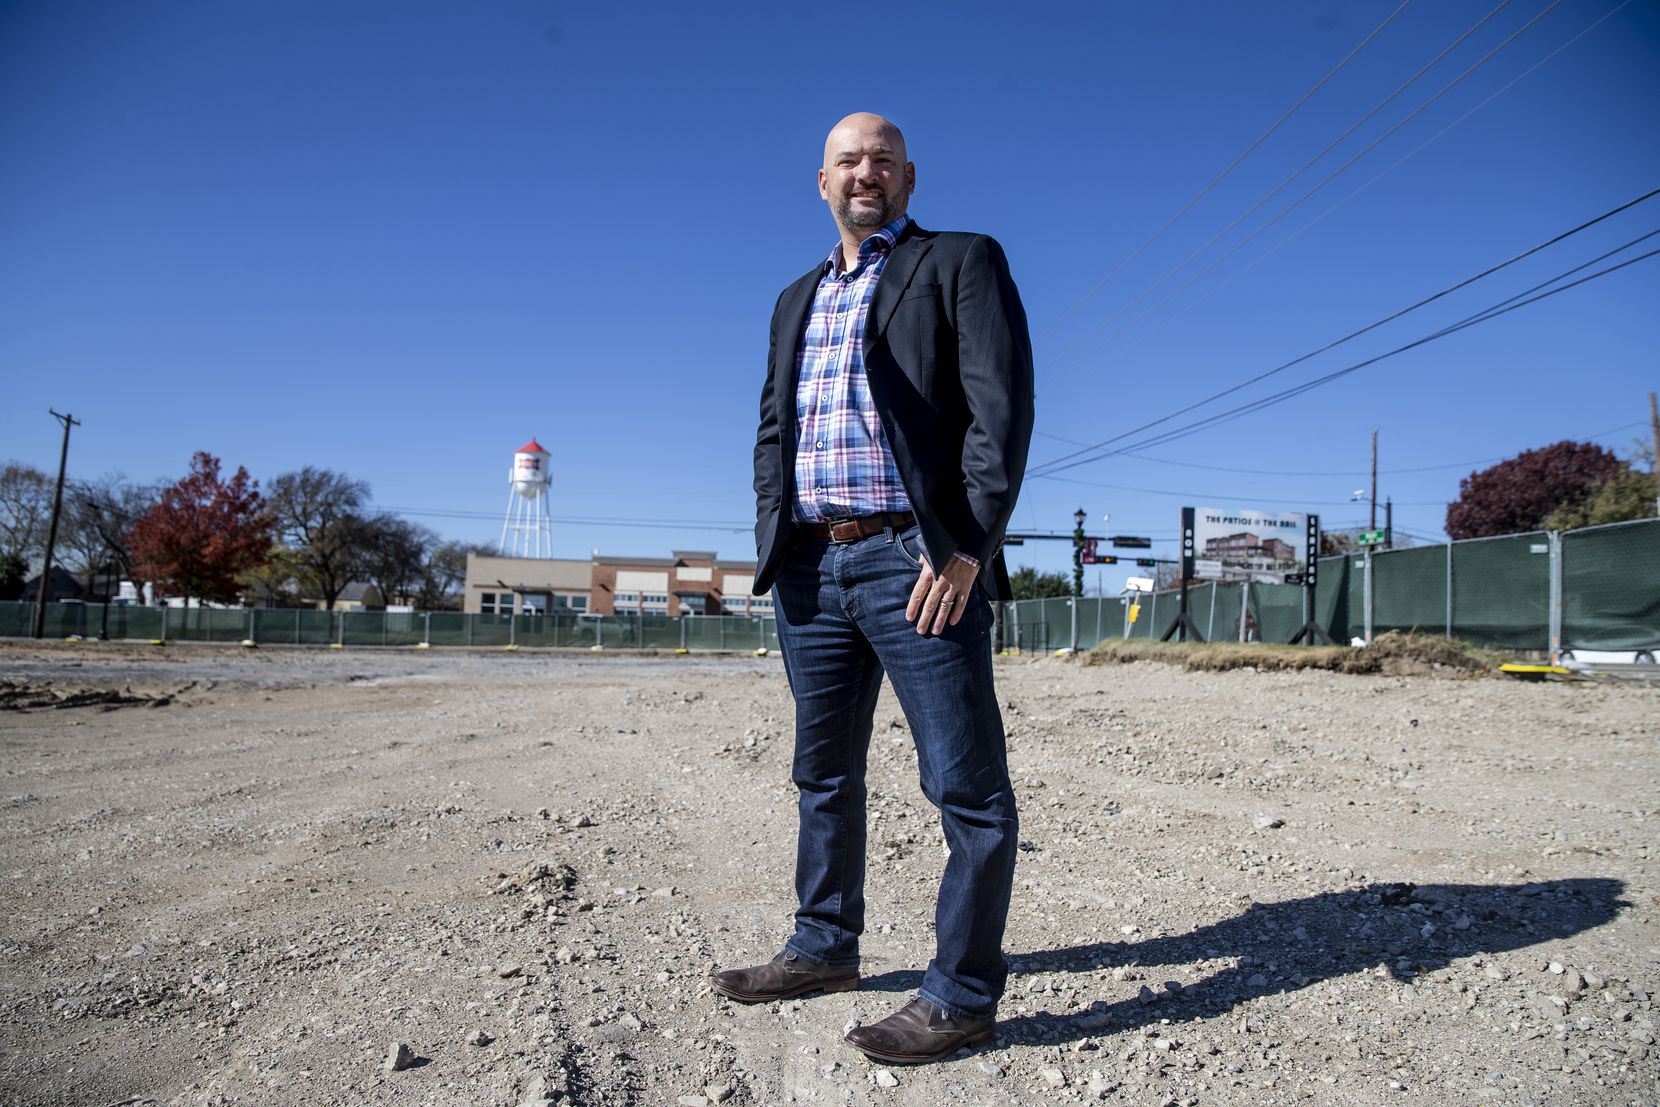 Developer Donny Churchman of Nack Development stands in the lot where he plans to build one of his projects on Main Street in downtown Frisco.